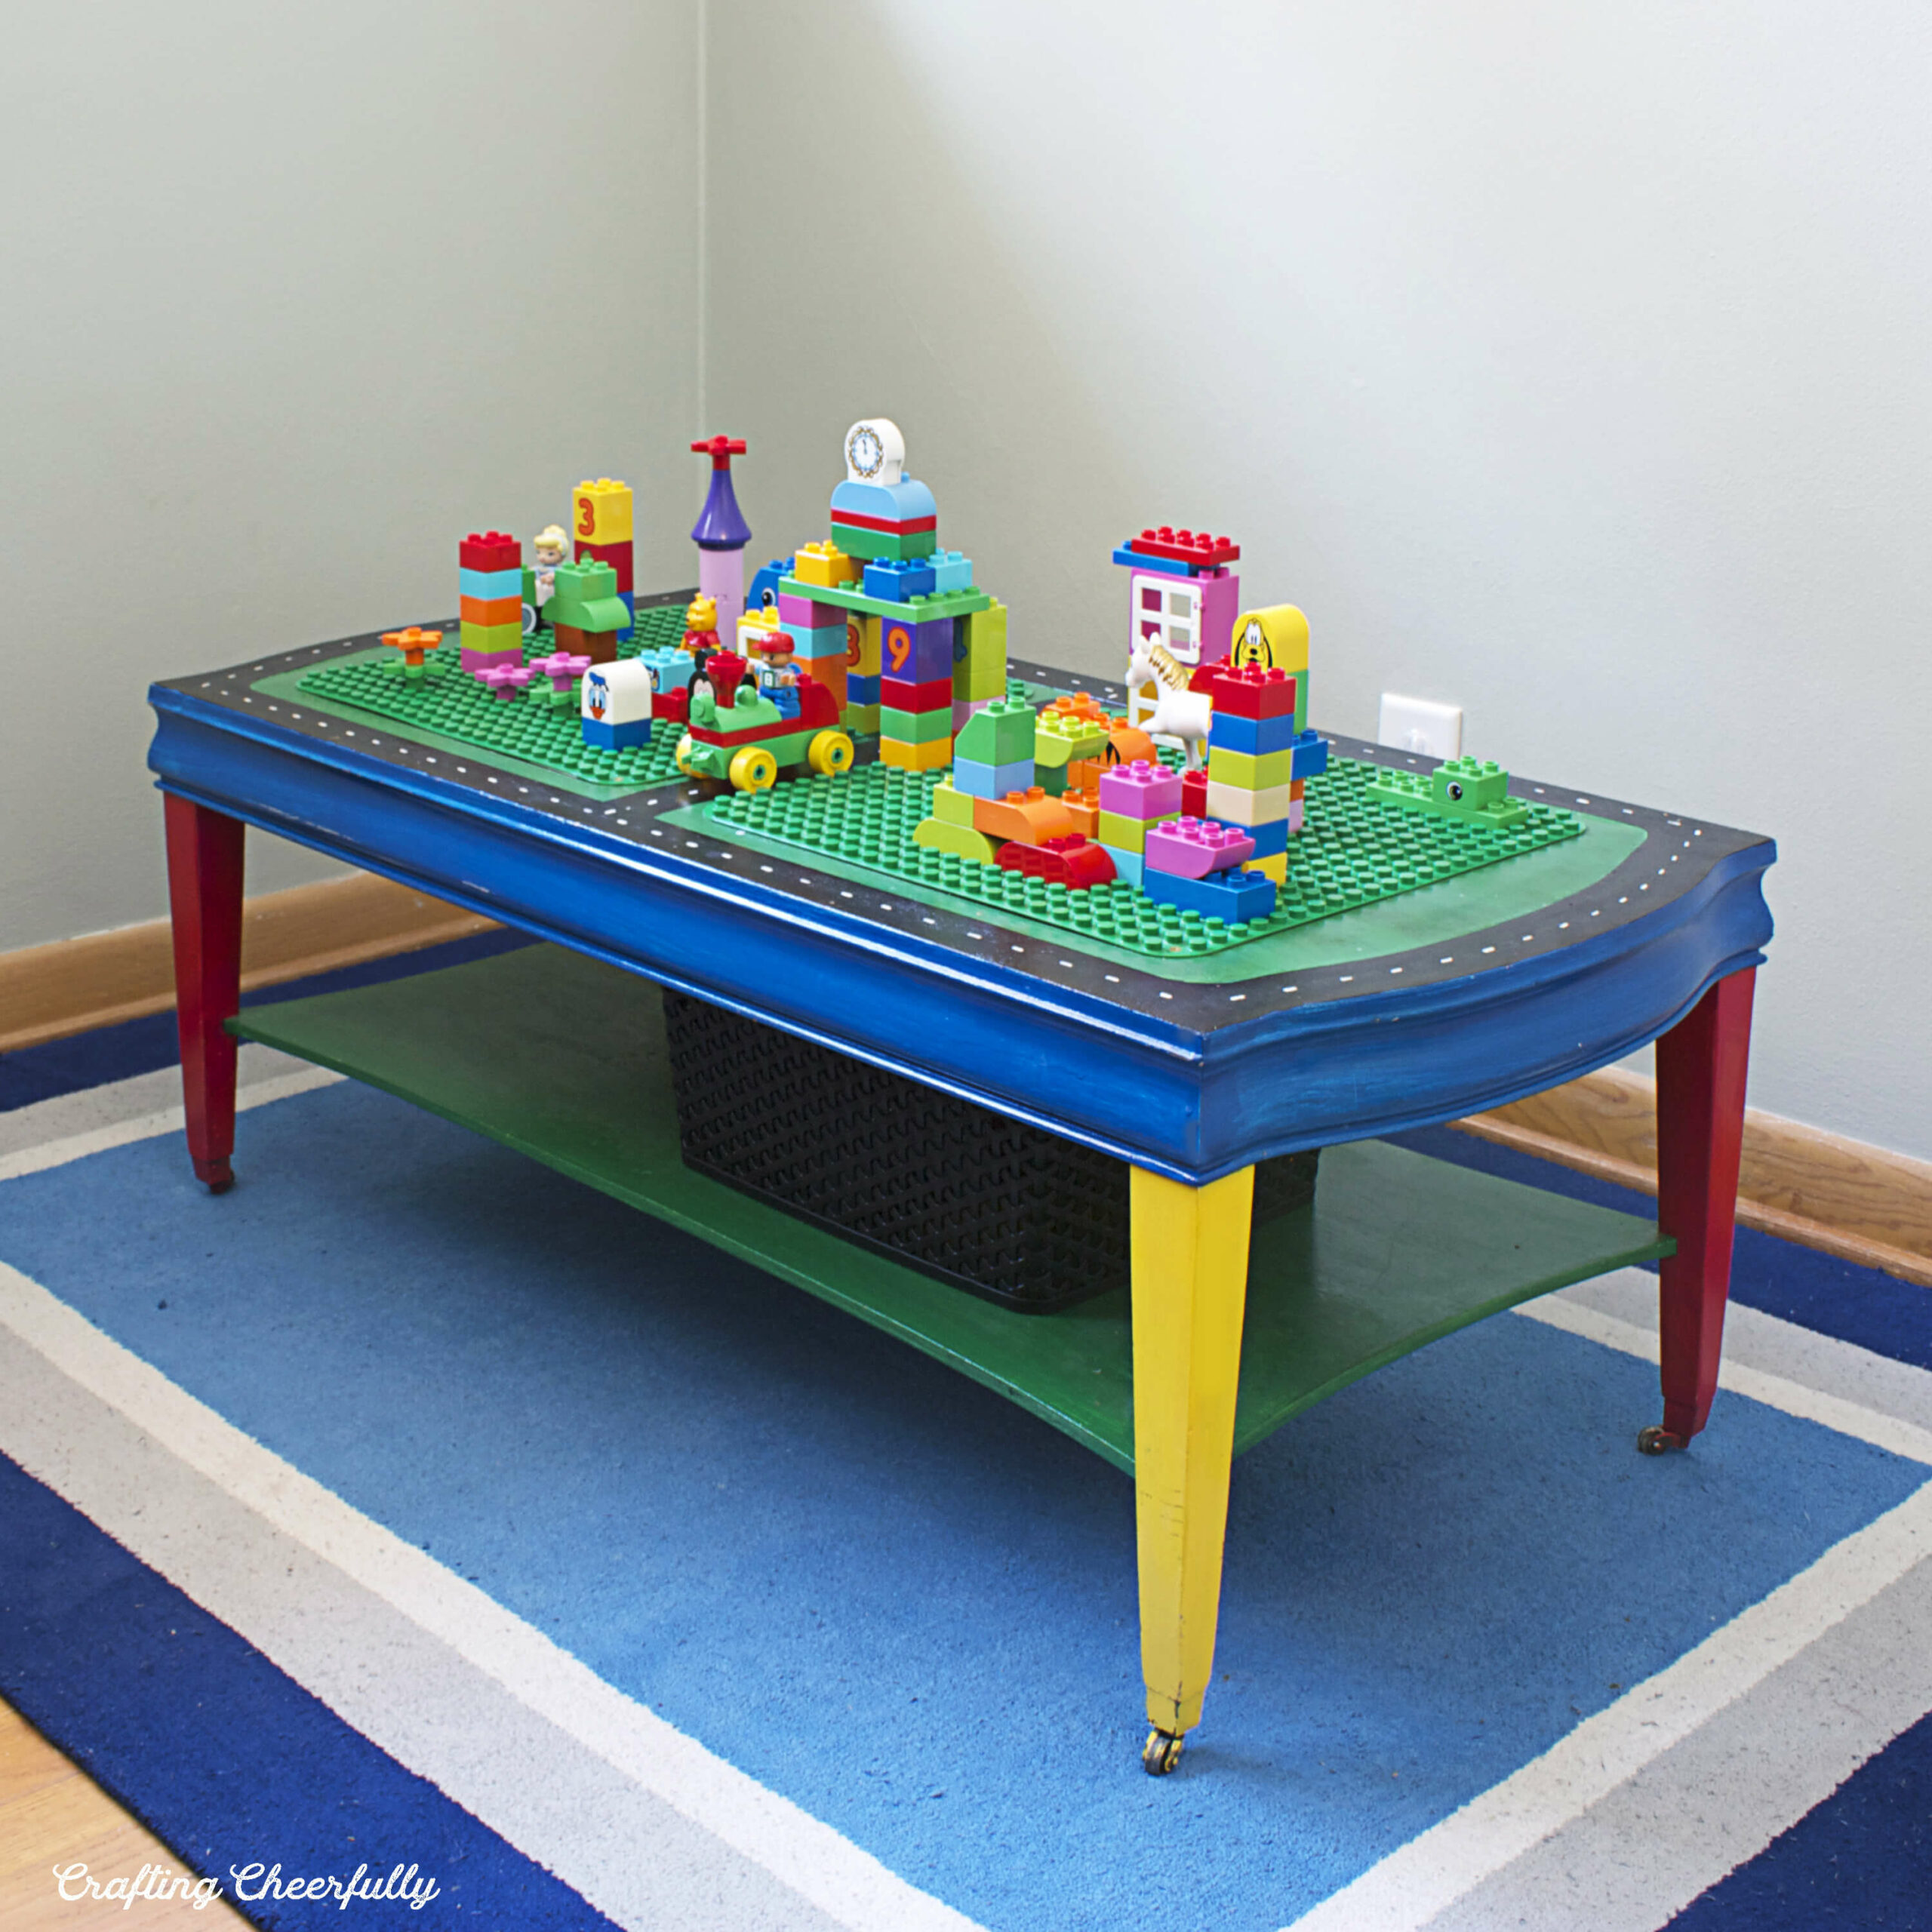 Build a DIY Lego table